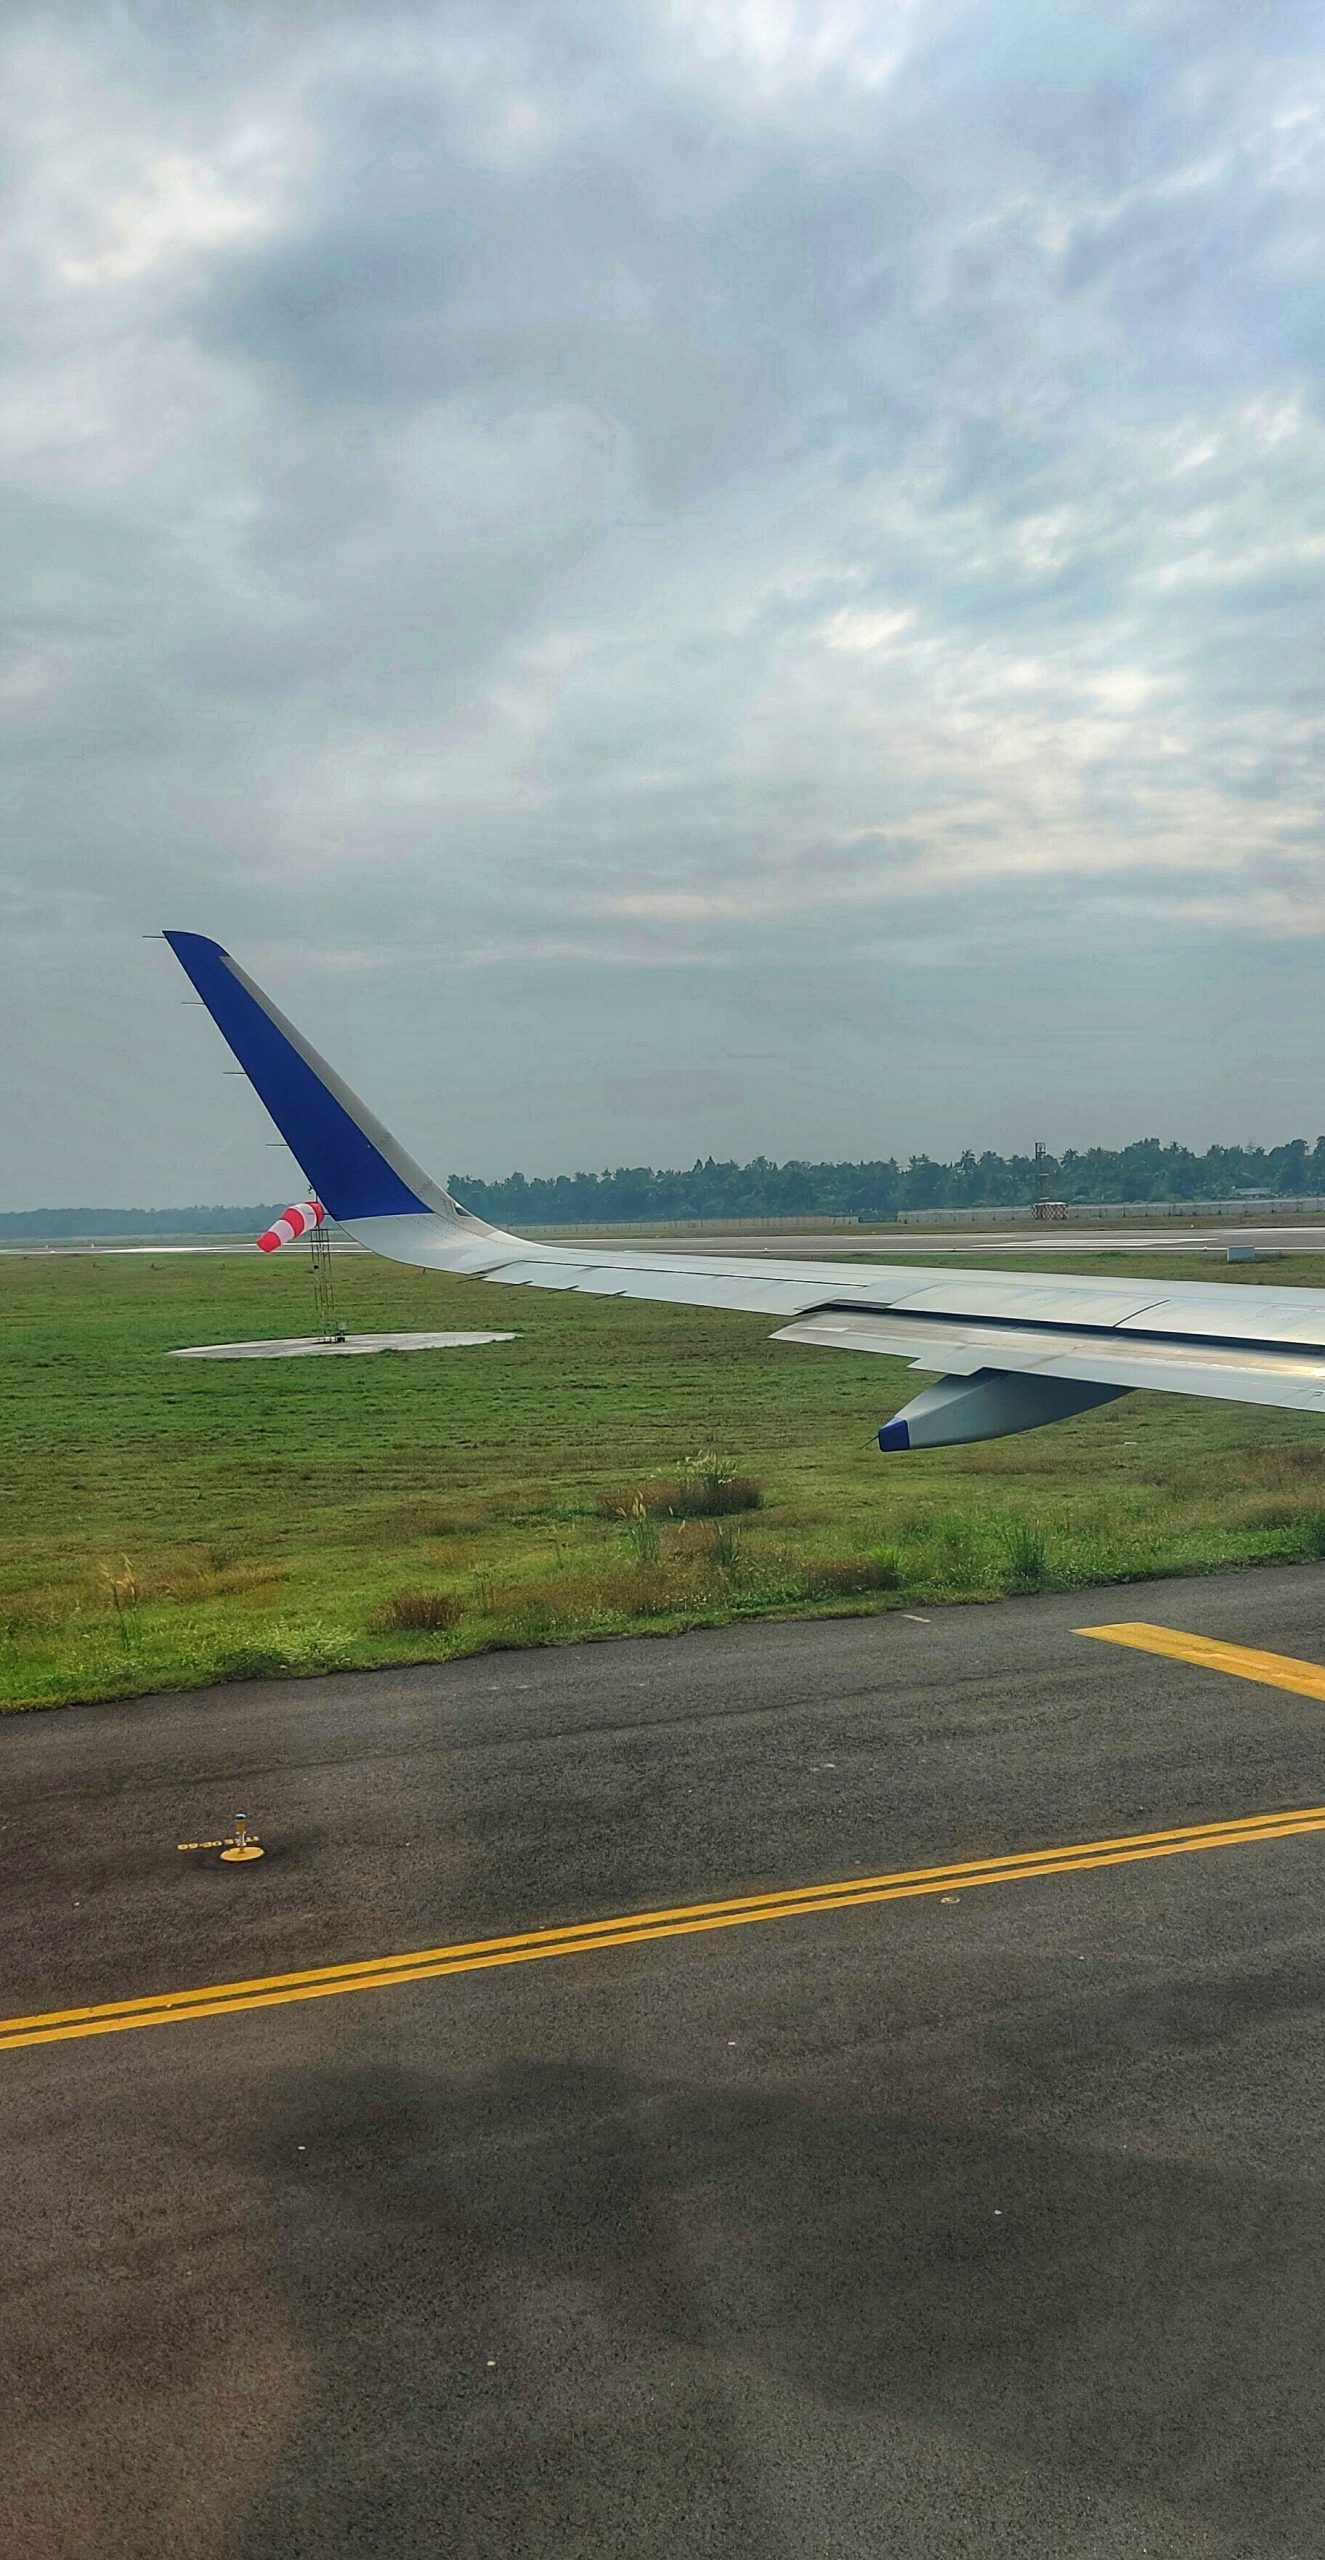 Wing of a airplane